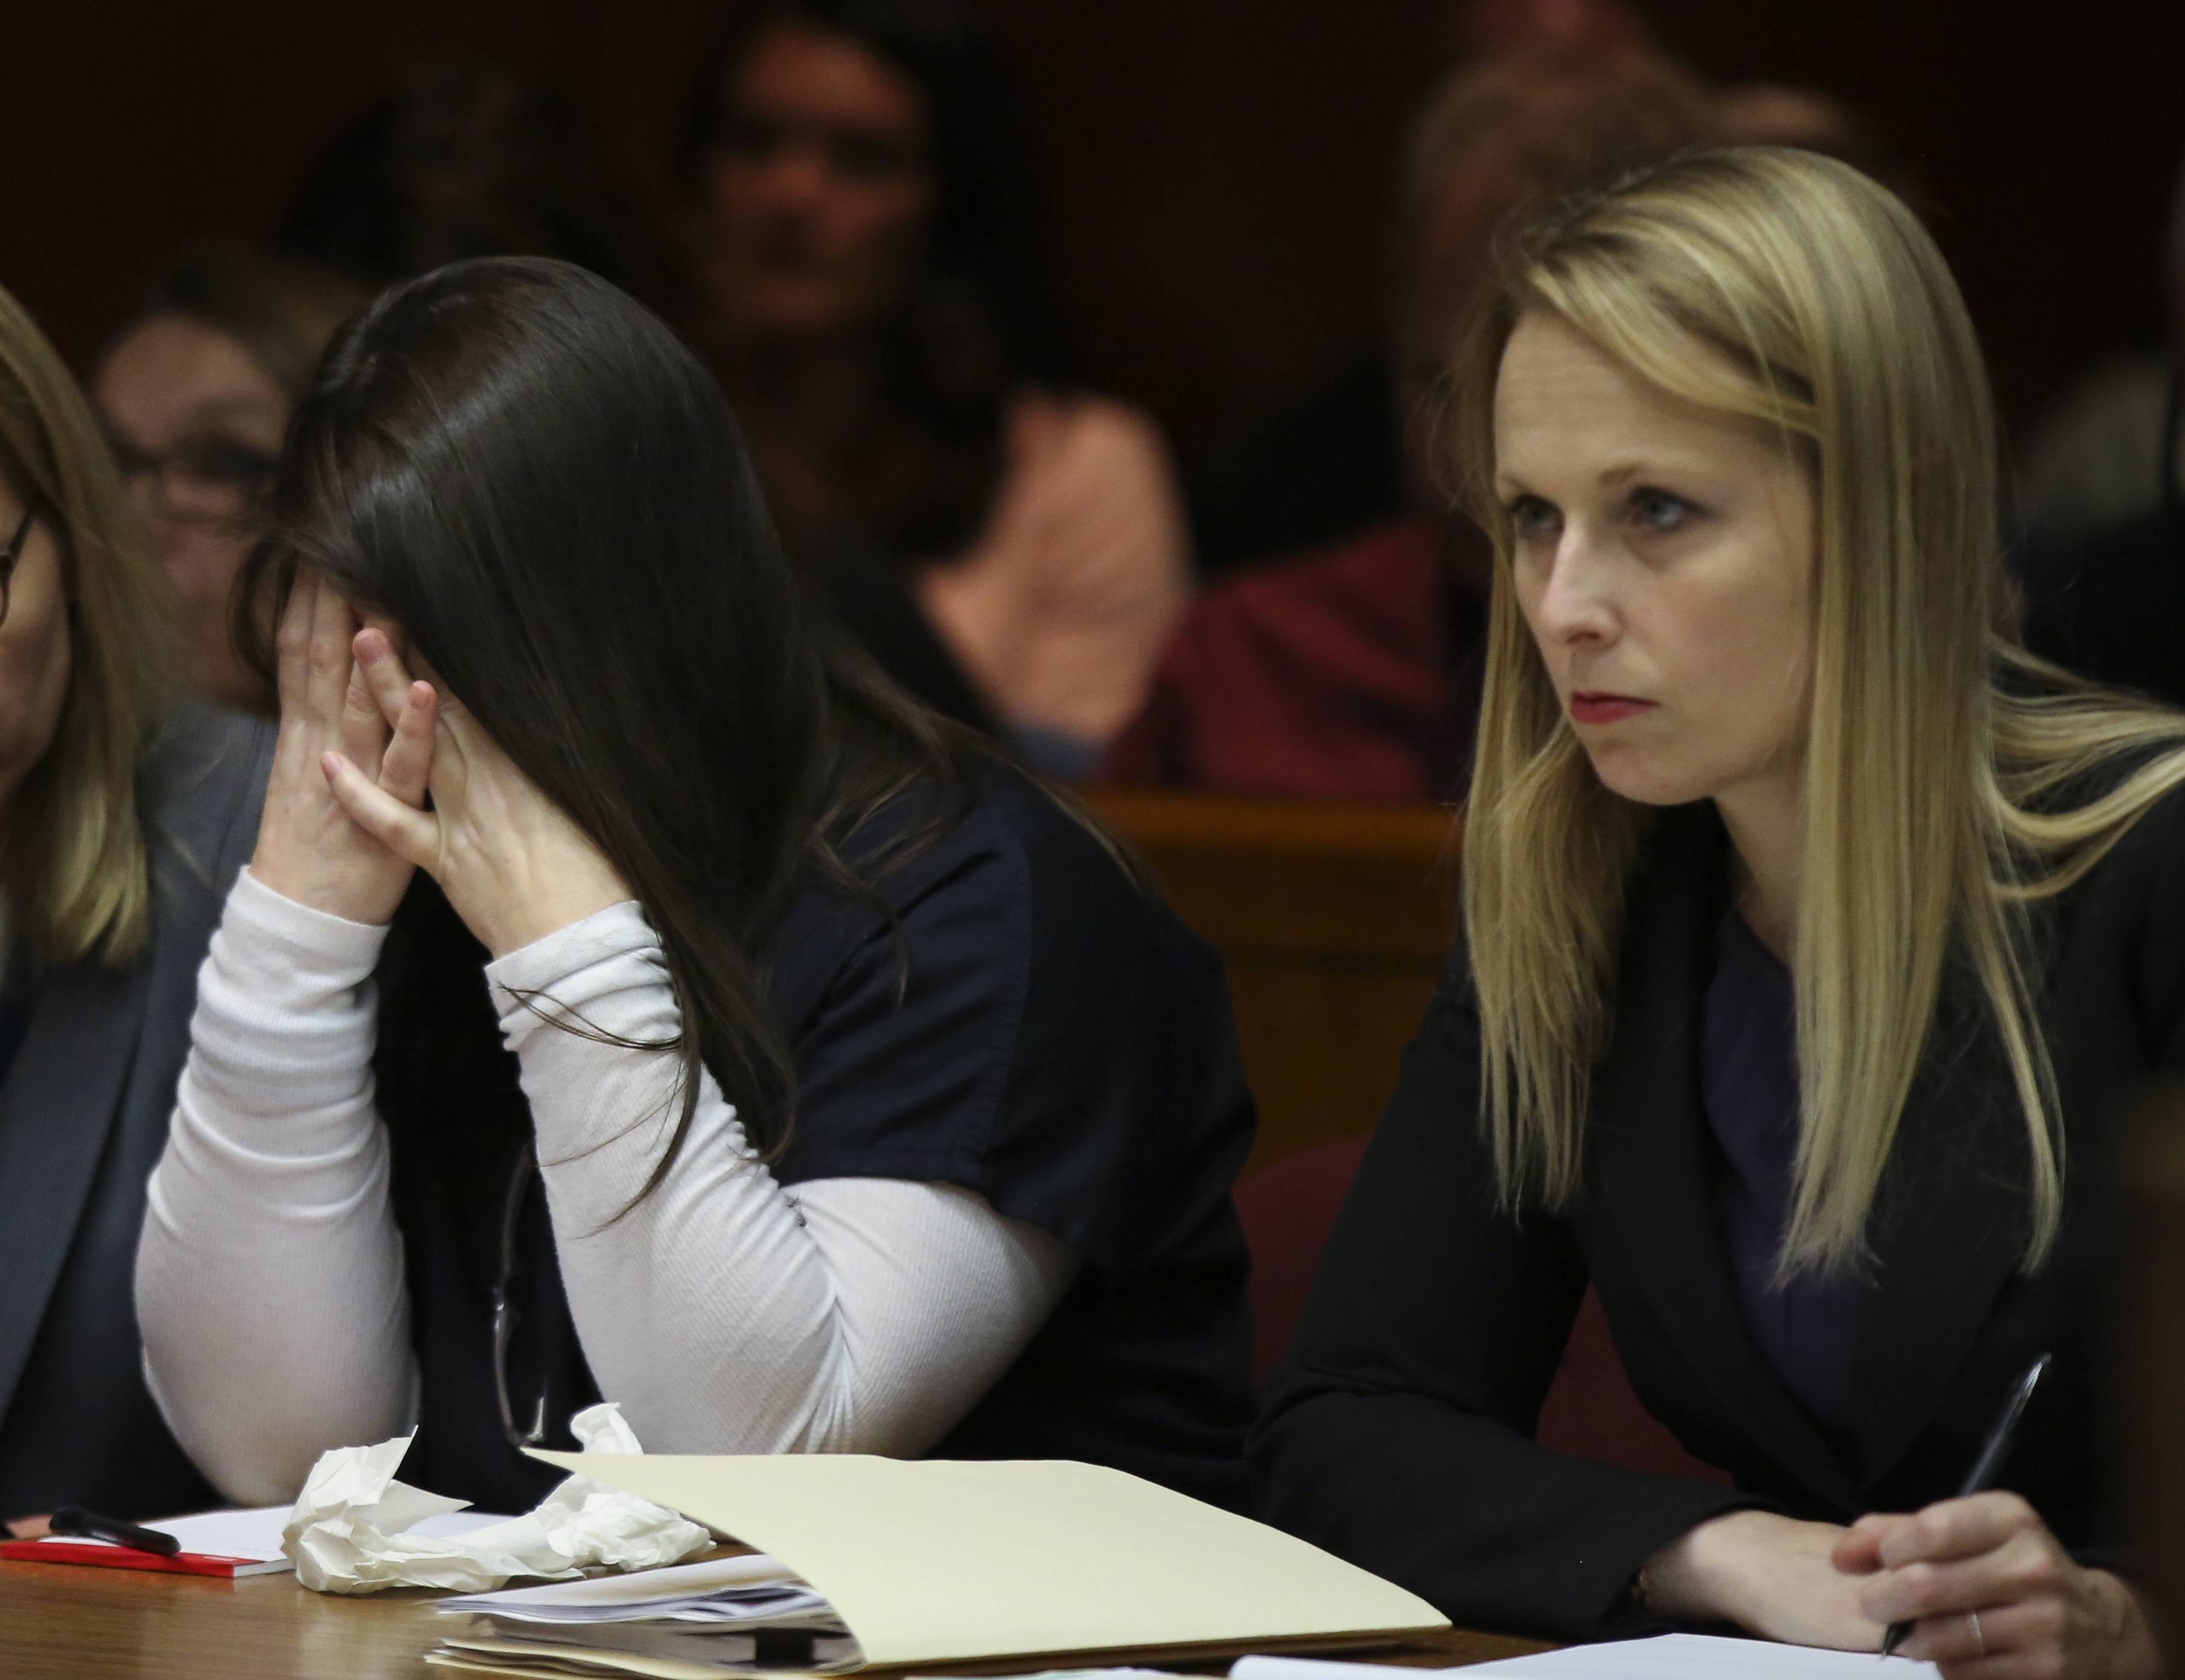 Elzbieta Plackowska, left, is shown during opening statements Tuesday at her murder trial. She is accused of stabbing to death her son and a child she was watching in October 2012. With her is Supervising Assistant Public Defender Kristen Nevdal.